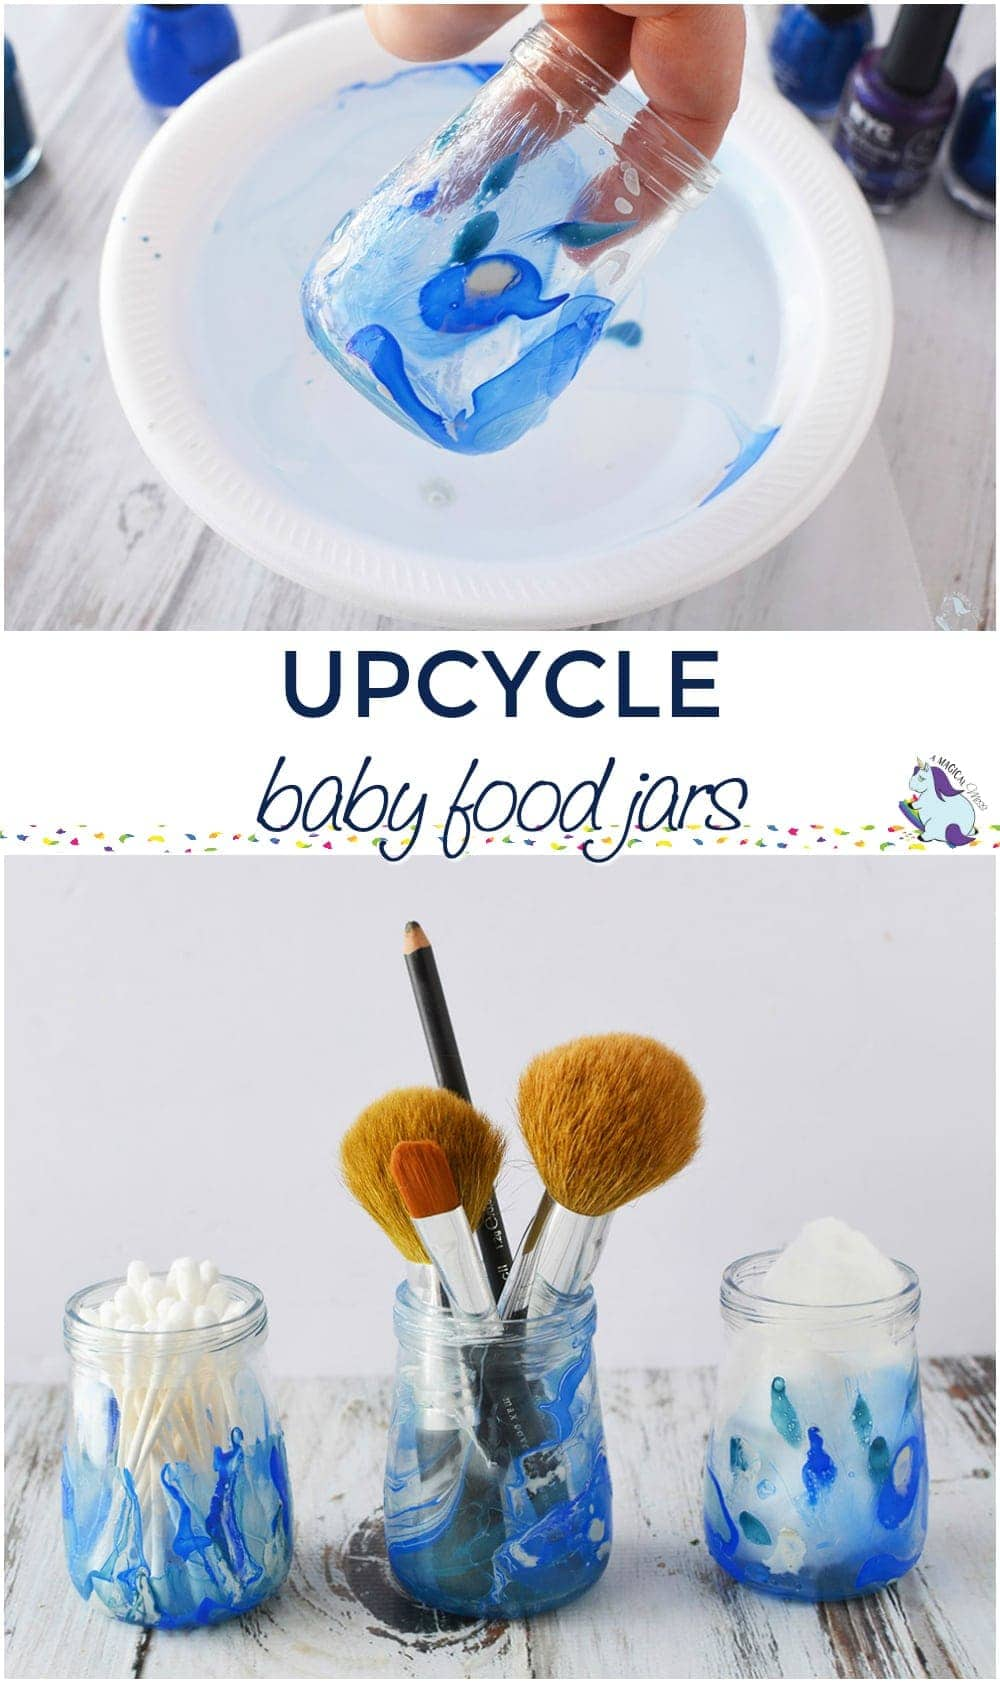 Upcycle Empty Baby Food Jars into Storage Containers